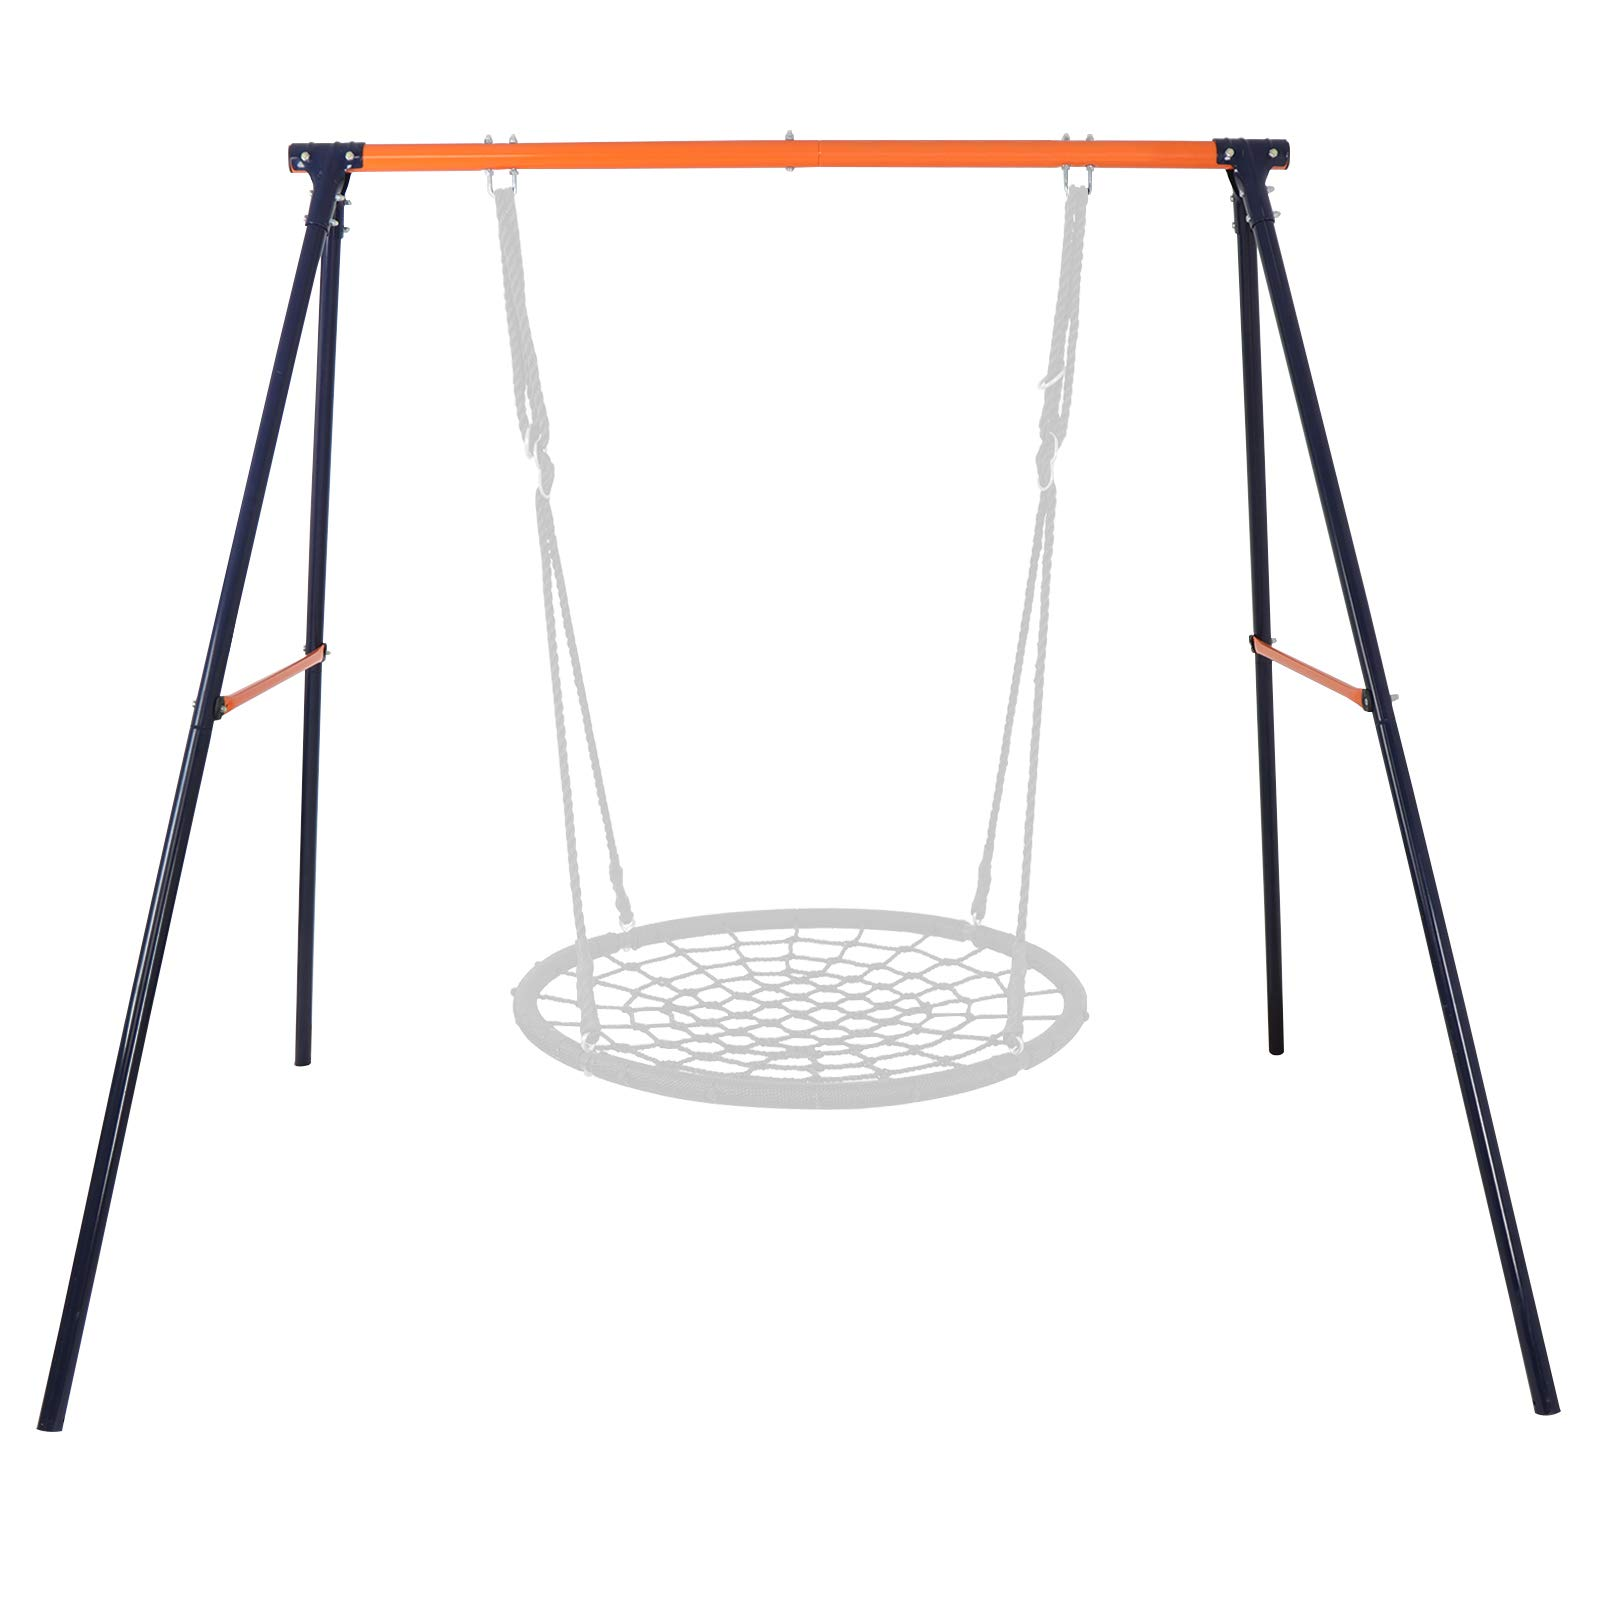 SUPER DEAL Extra Large Heavy Duty All-Steel All Weather A-Frame Swing Frame Set Metal Swing Stand, 72'' Height 87'' Length, Fits for Most Swings, Fun for Kids (Swing Frame)